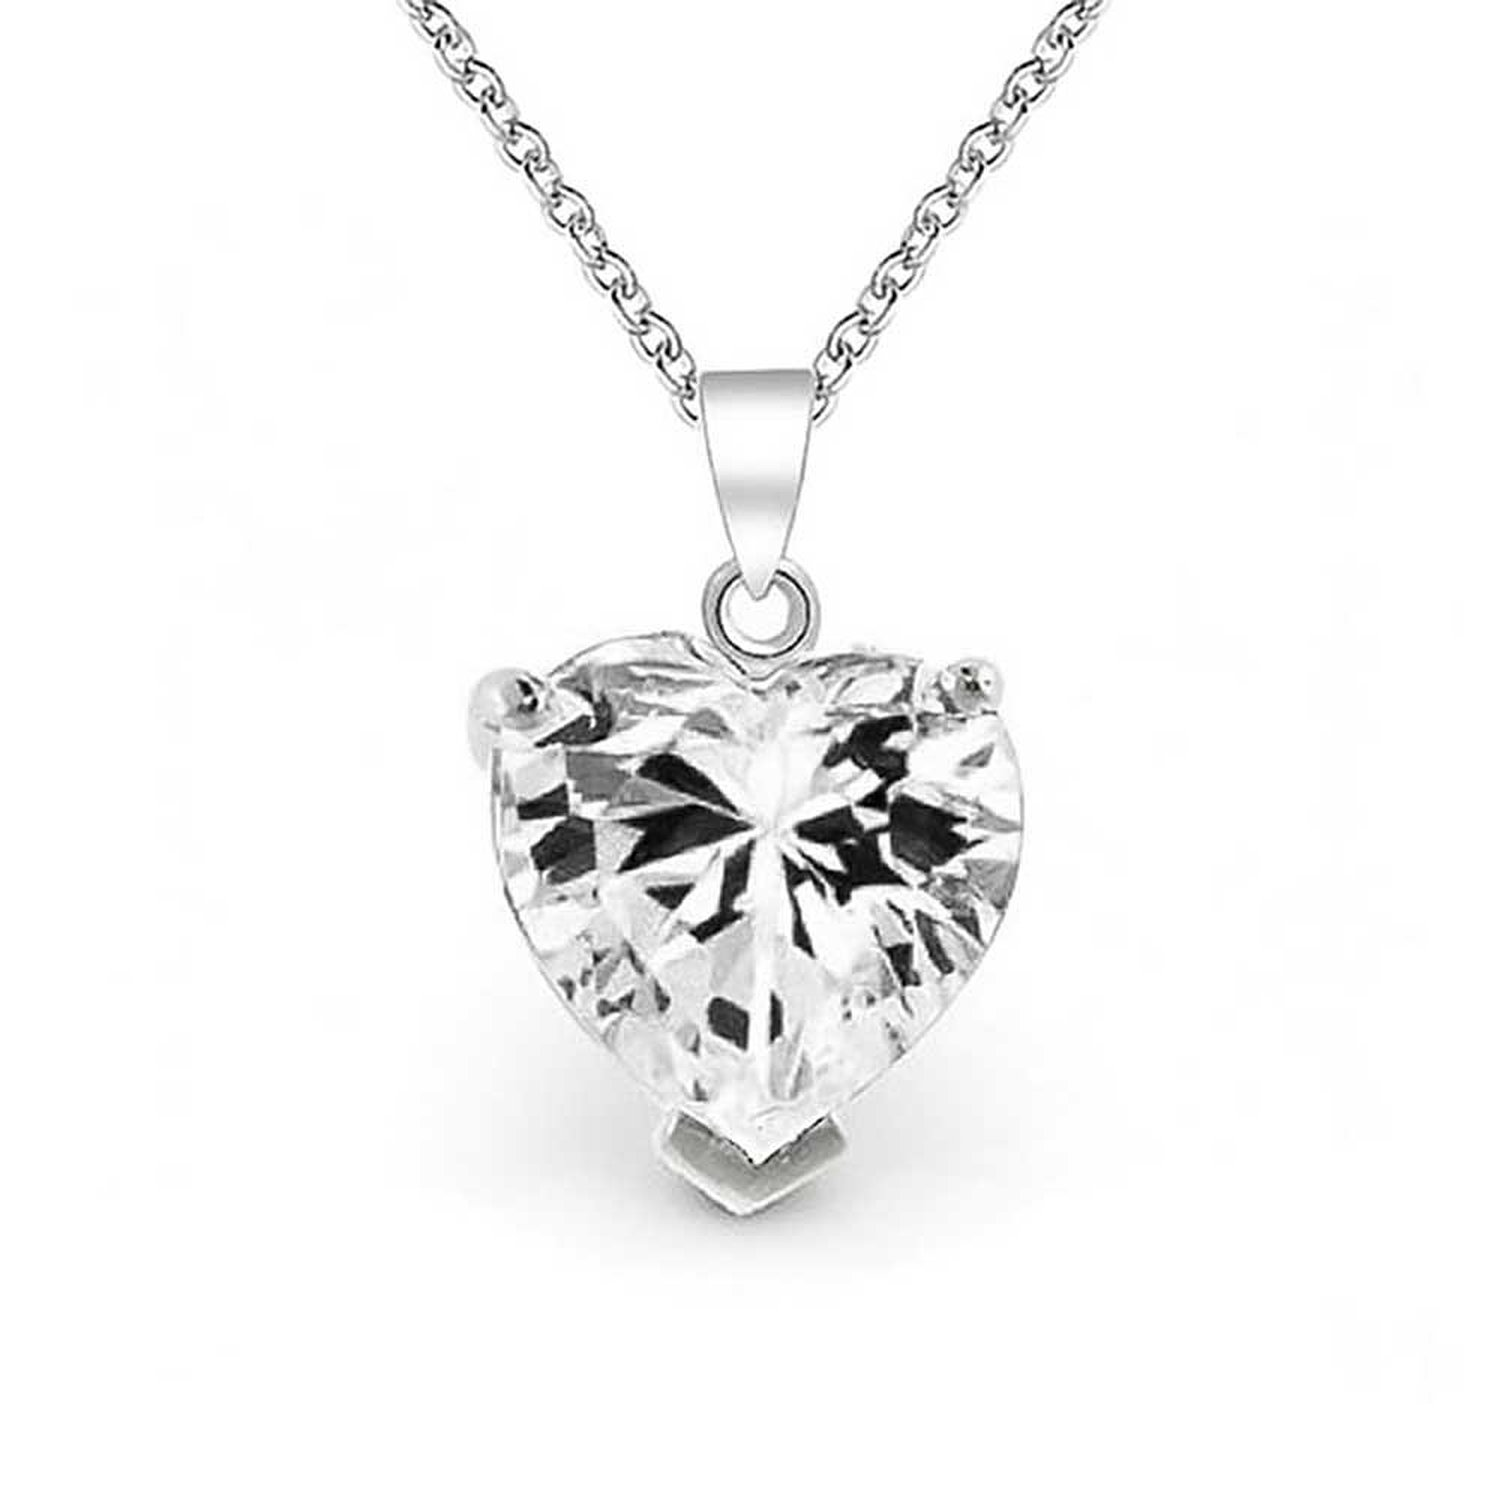 Amazon bling jewelry 4 ct sterling silver cubic zirconia amazon bling jewelry 4 ct sterling silver cubic zirconia solitaire heart necklace 16in pendant necklaces jewelry mozeypictures Gallery